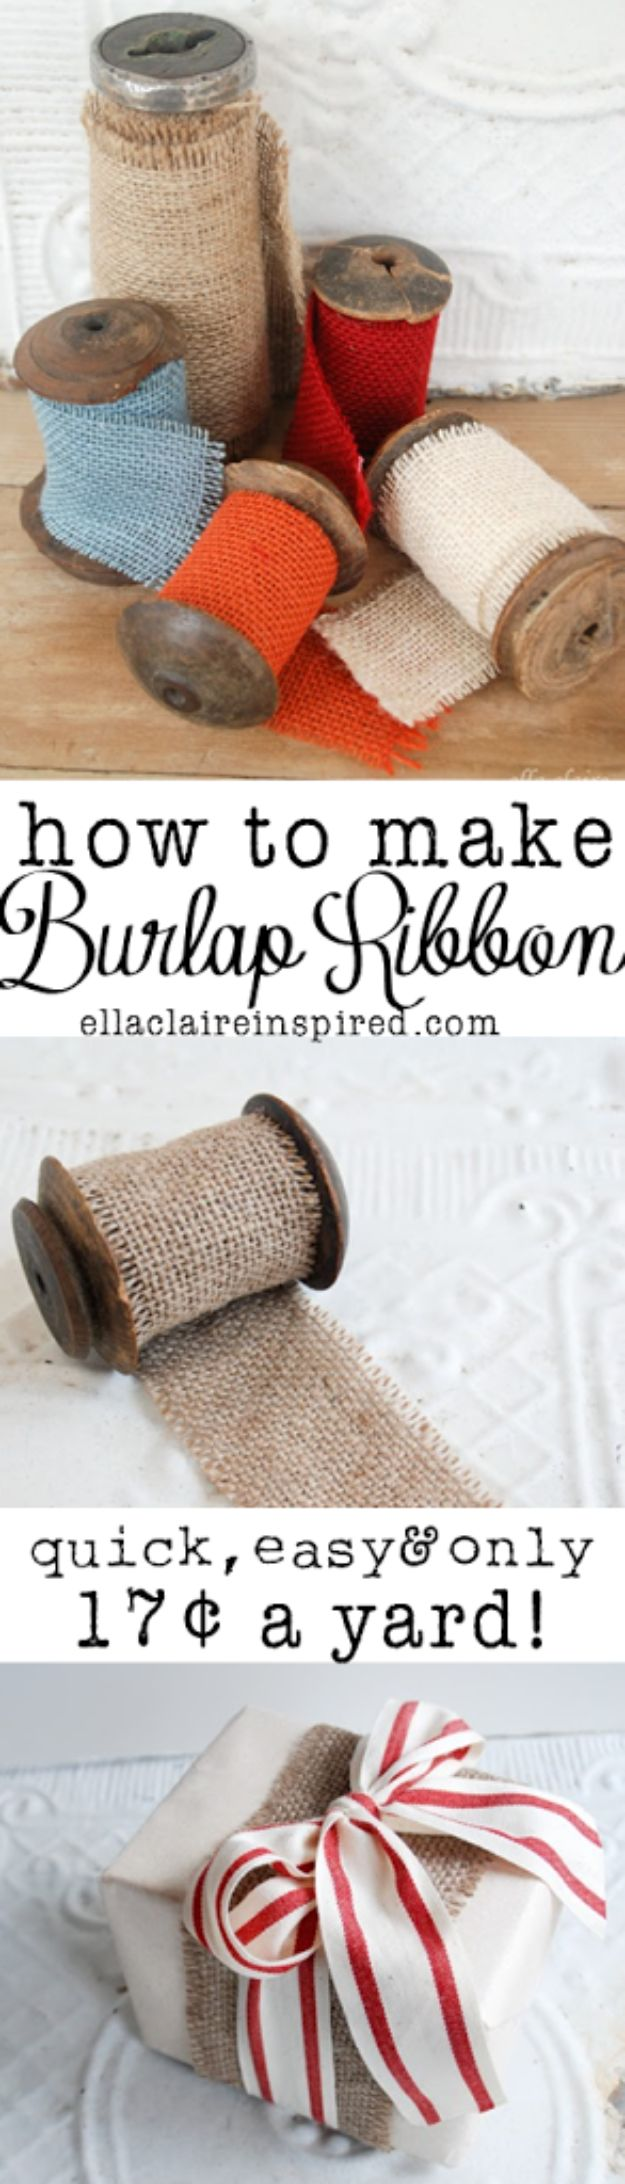 Cool Gift Wrapping Ideas - Burlap Ribbon - Creative Ways To Wrap Presents on A Budget - Best Christmas Gift Wrap Ideas - How To Make Gift Bags, Reuse Wrapping Paper, Make Bows and Tags - Cute and Easy Ideas for Wrapping Gifts for the Holidays - Step by Step Instructions and Photo Tutorials